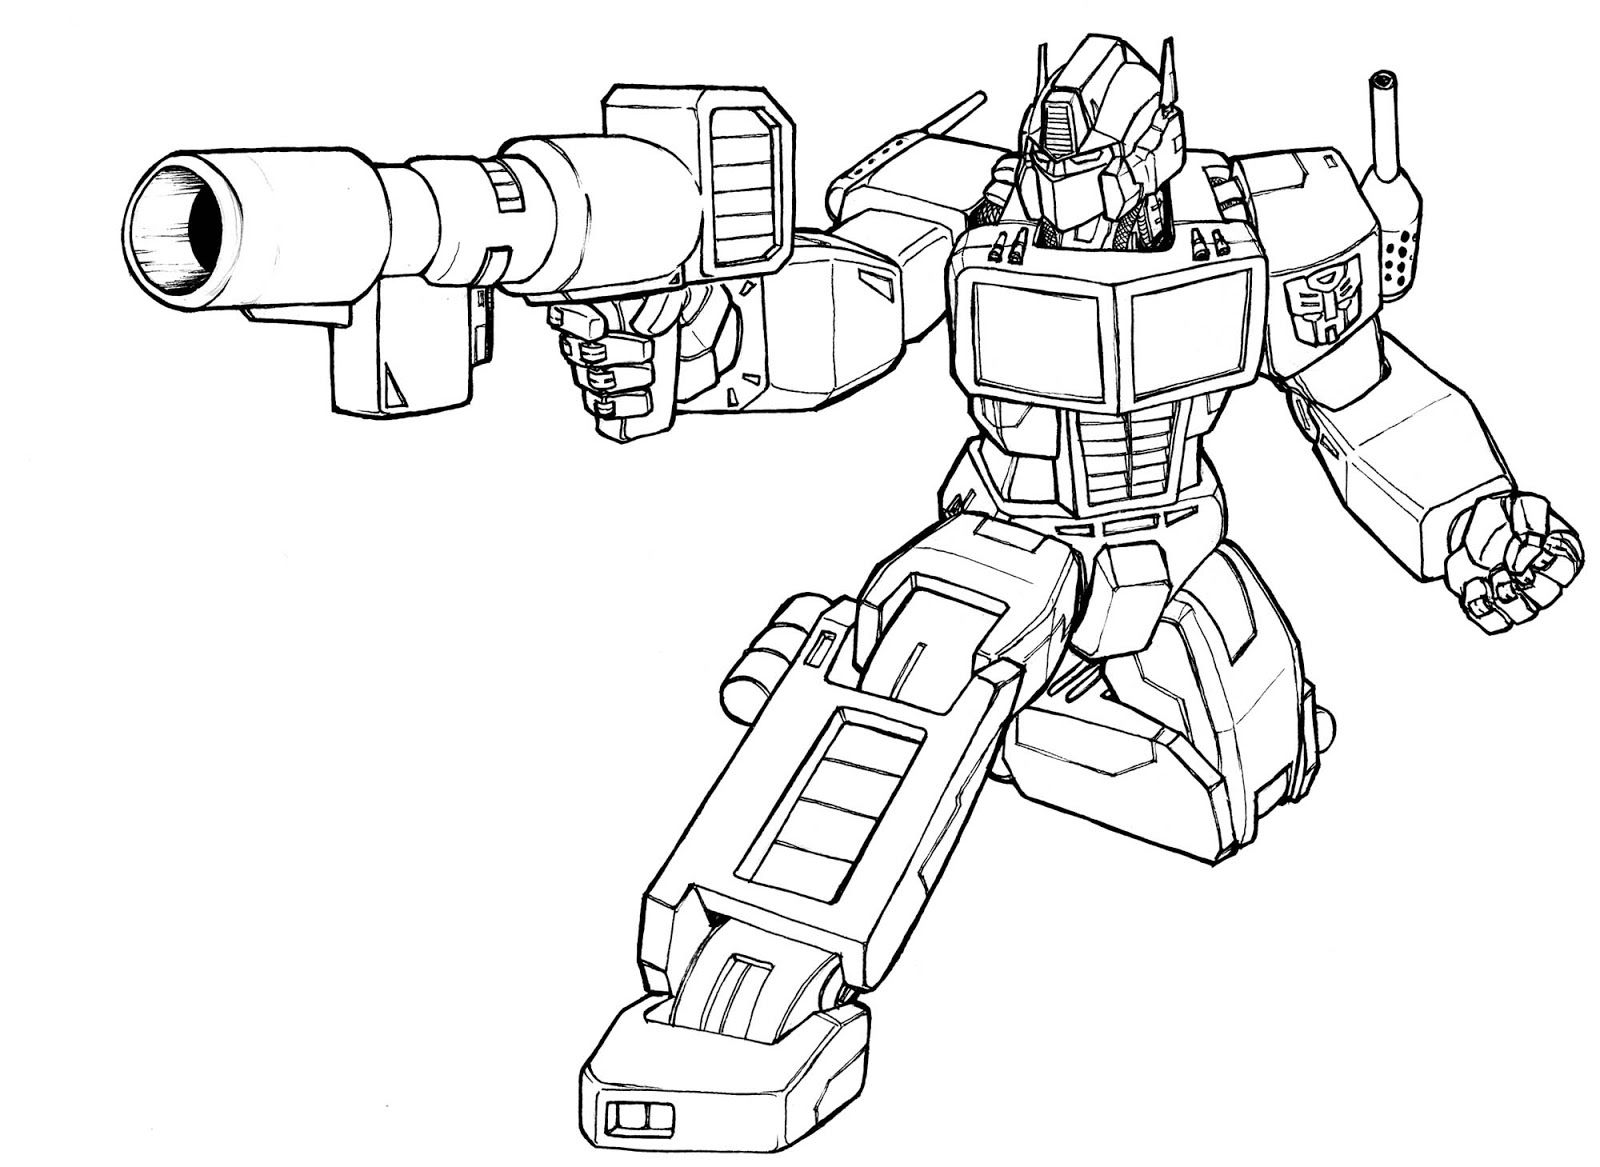 Optimus Prime Coloring Page Luxury Printable Transformer Coloring Pages Of 50 Lovely Optimus P Transformers Coloring Pages Online Coloring Pages Coloring Pages